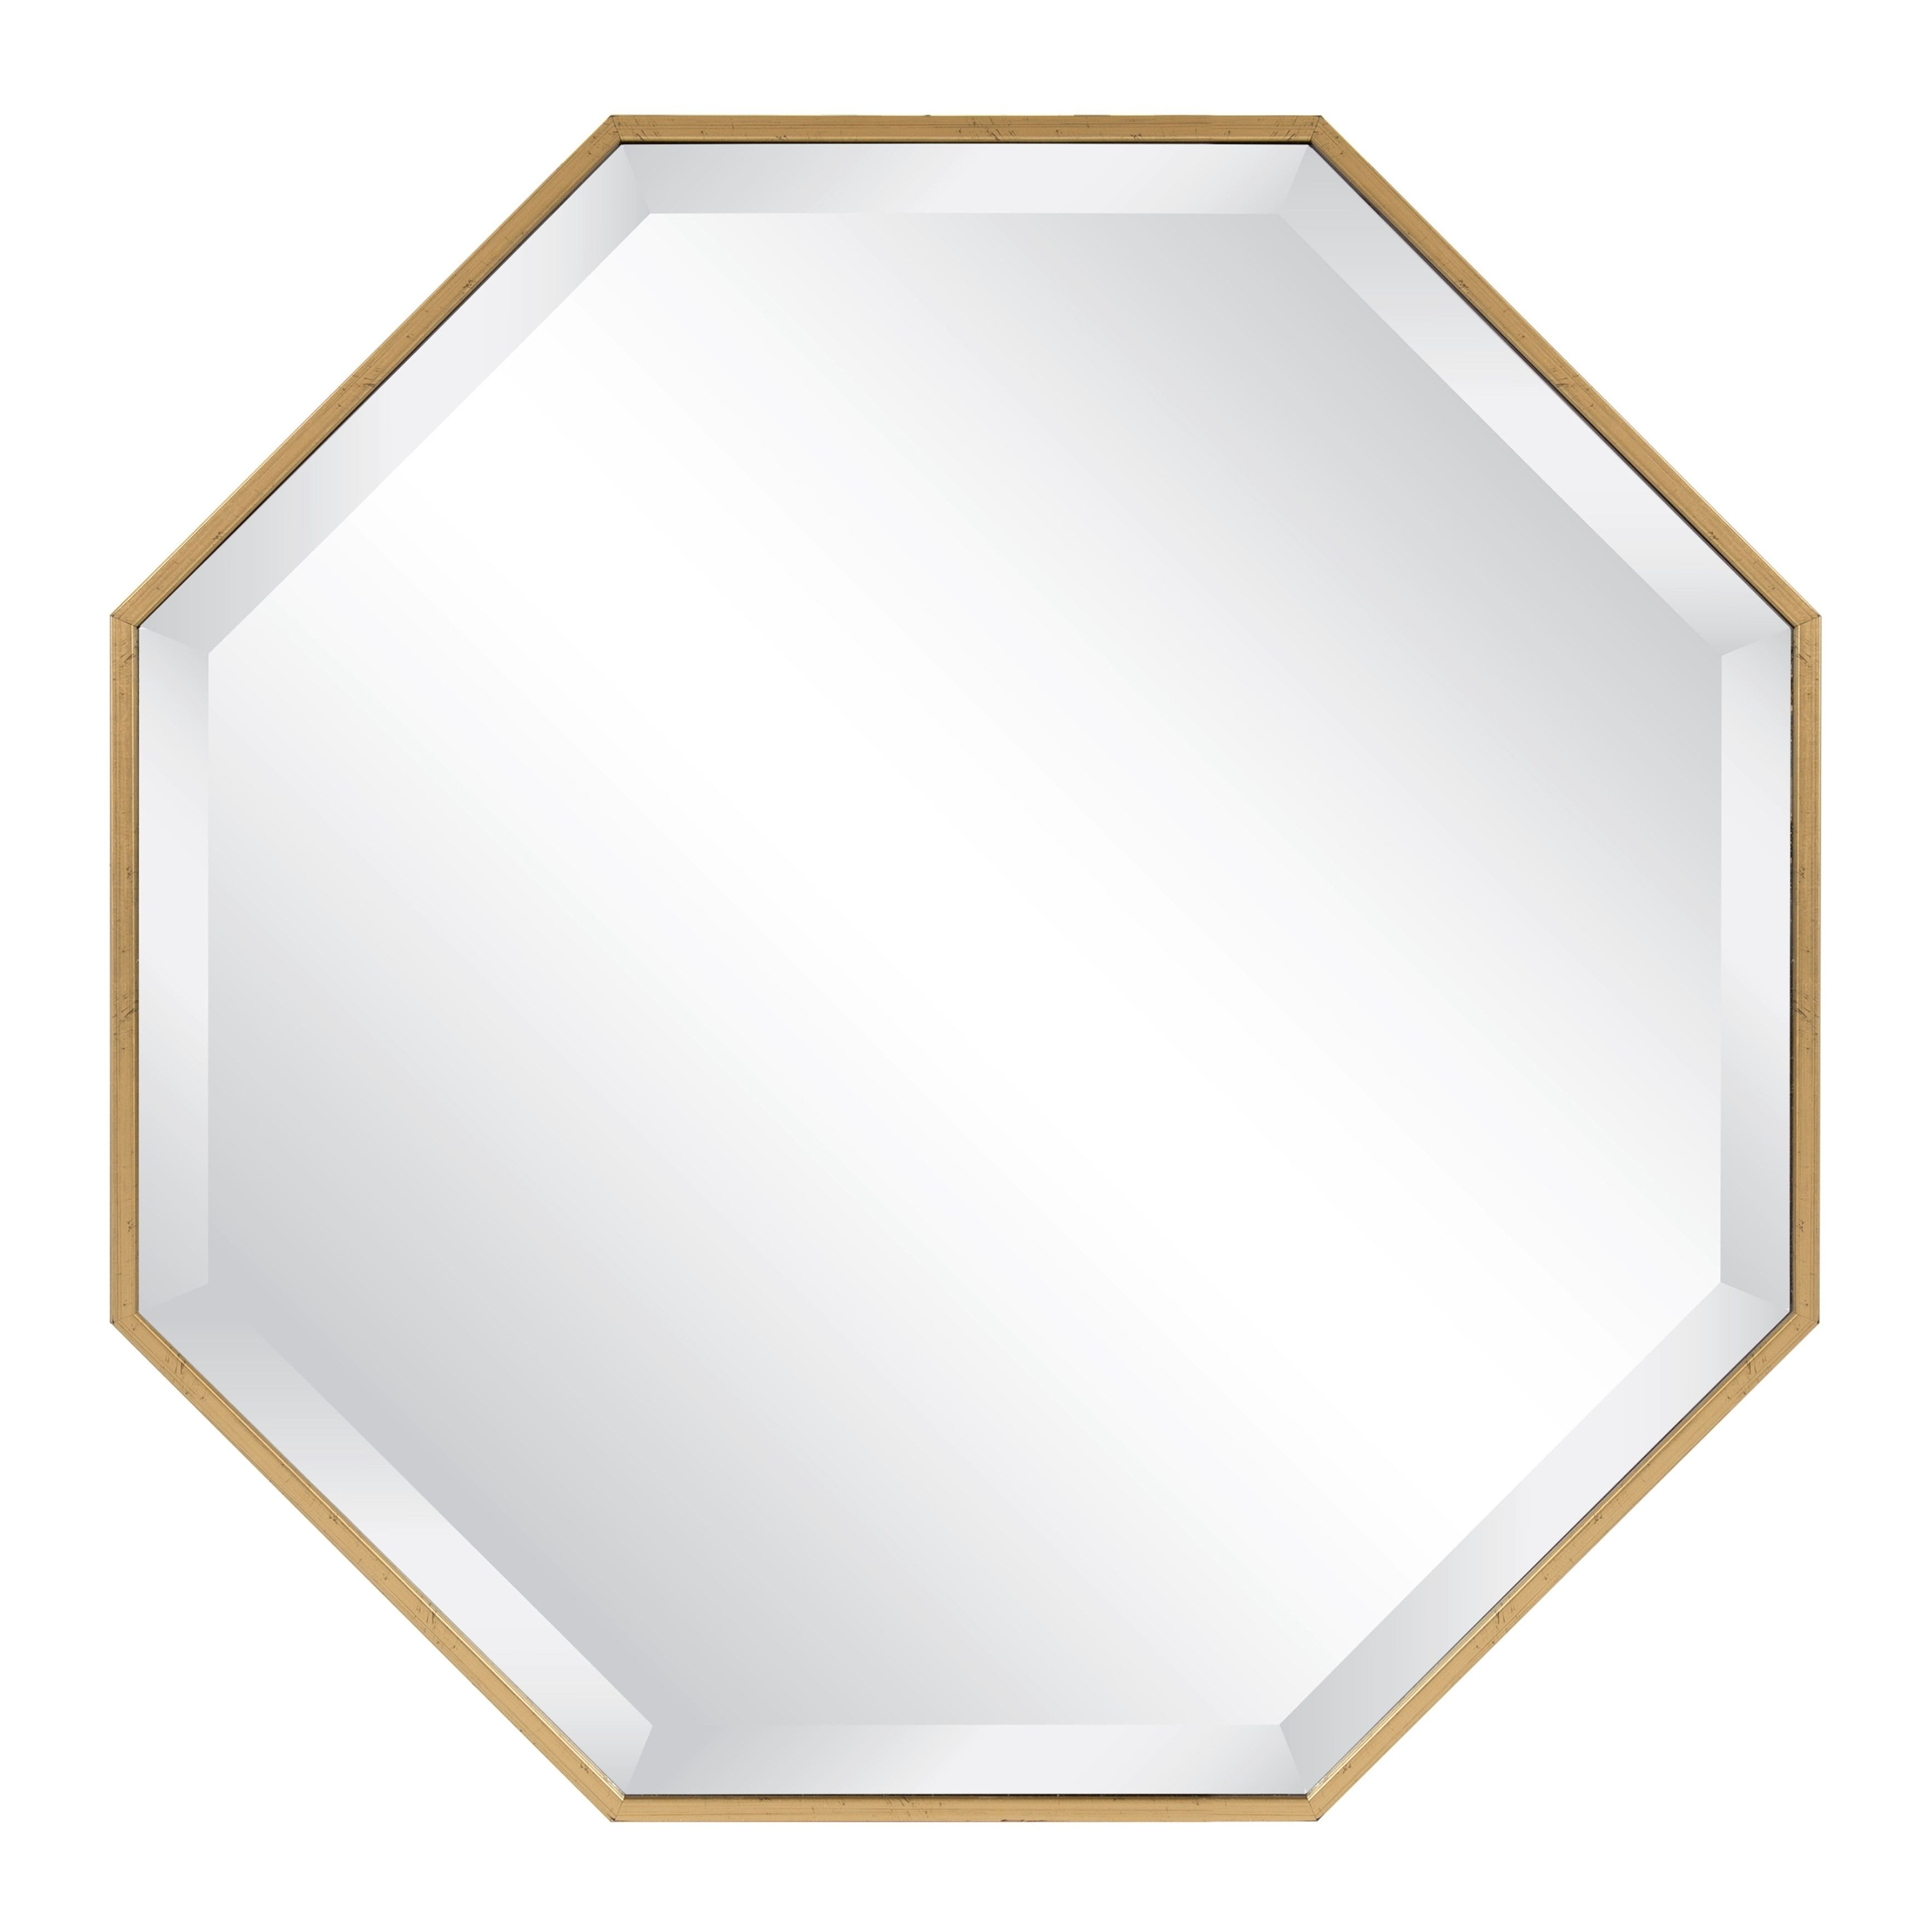 Octagon Wall Mirrors Pertaining To Widely Used Kate And Laurel Rhodes Modern Octagon Wall Mirror (24.75x (View 17 of 20)